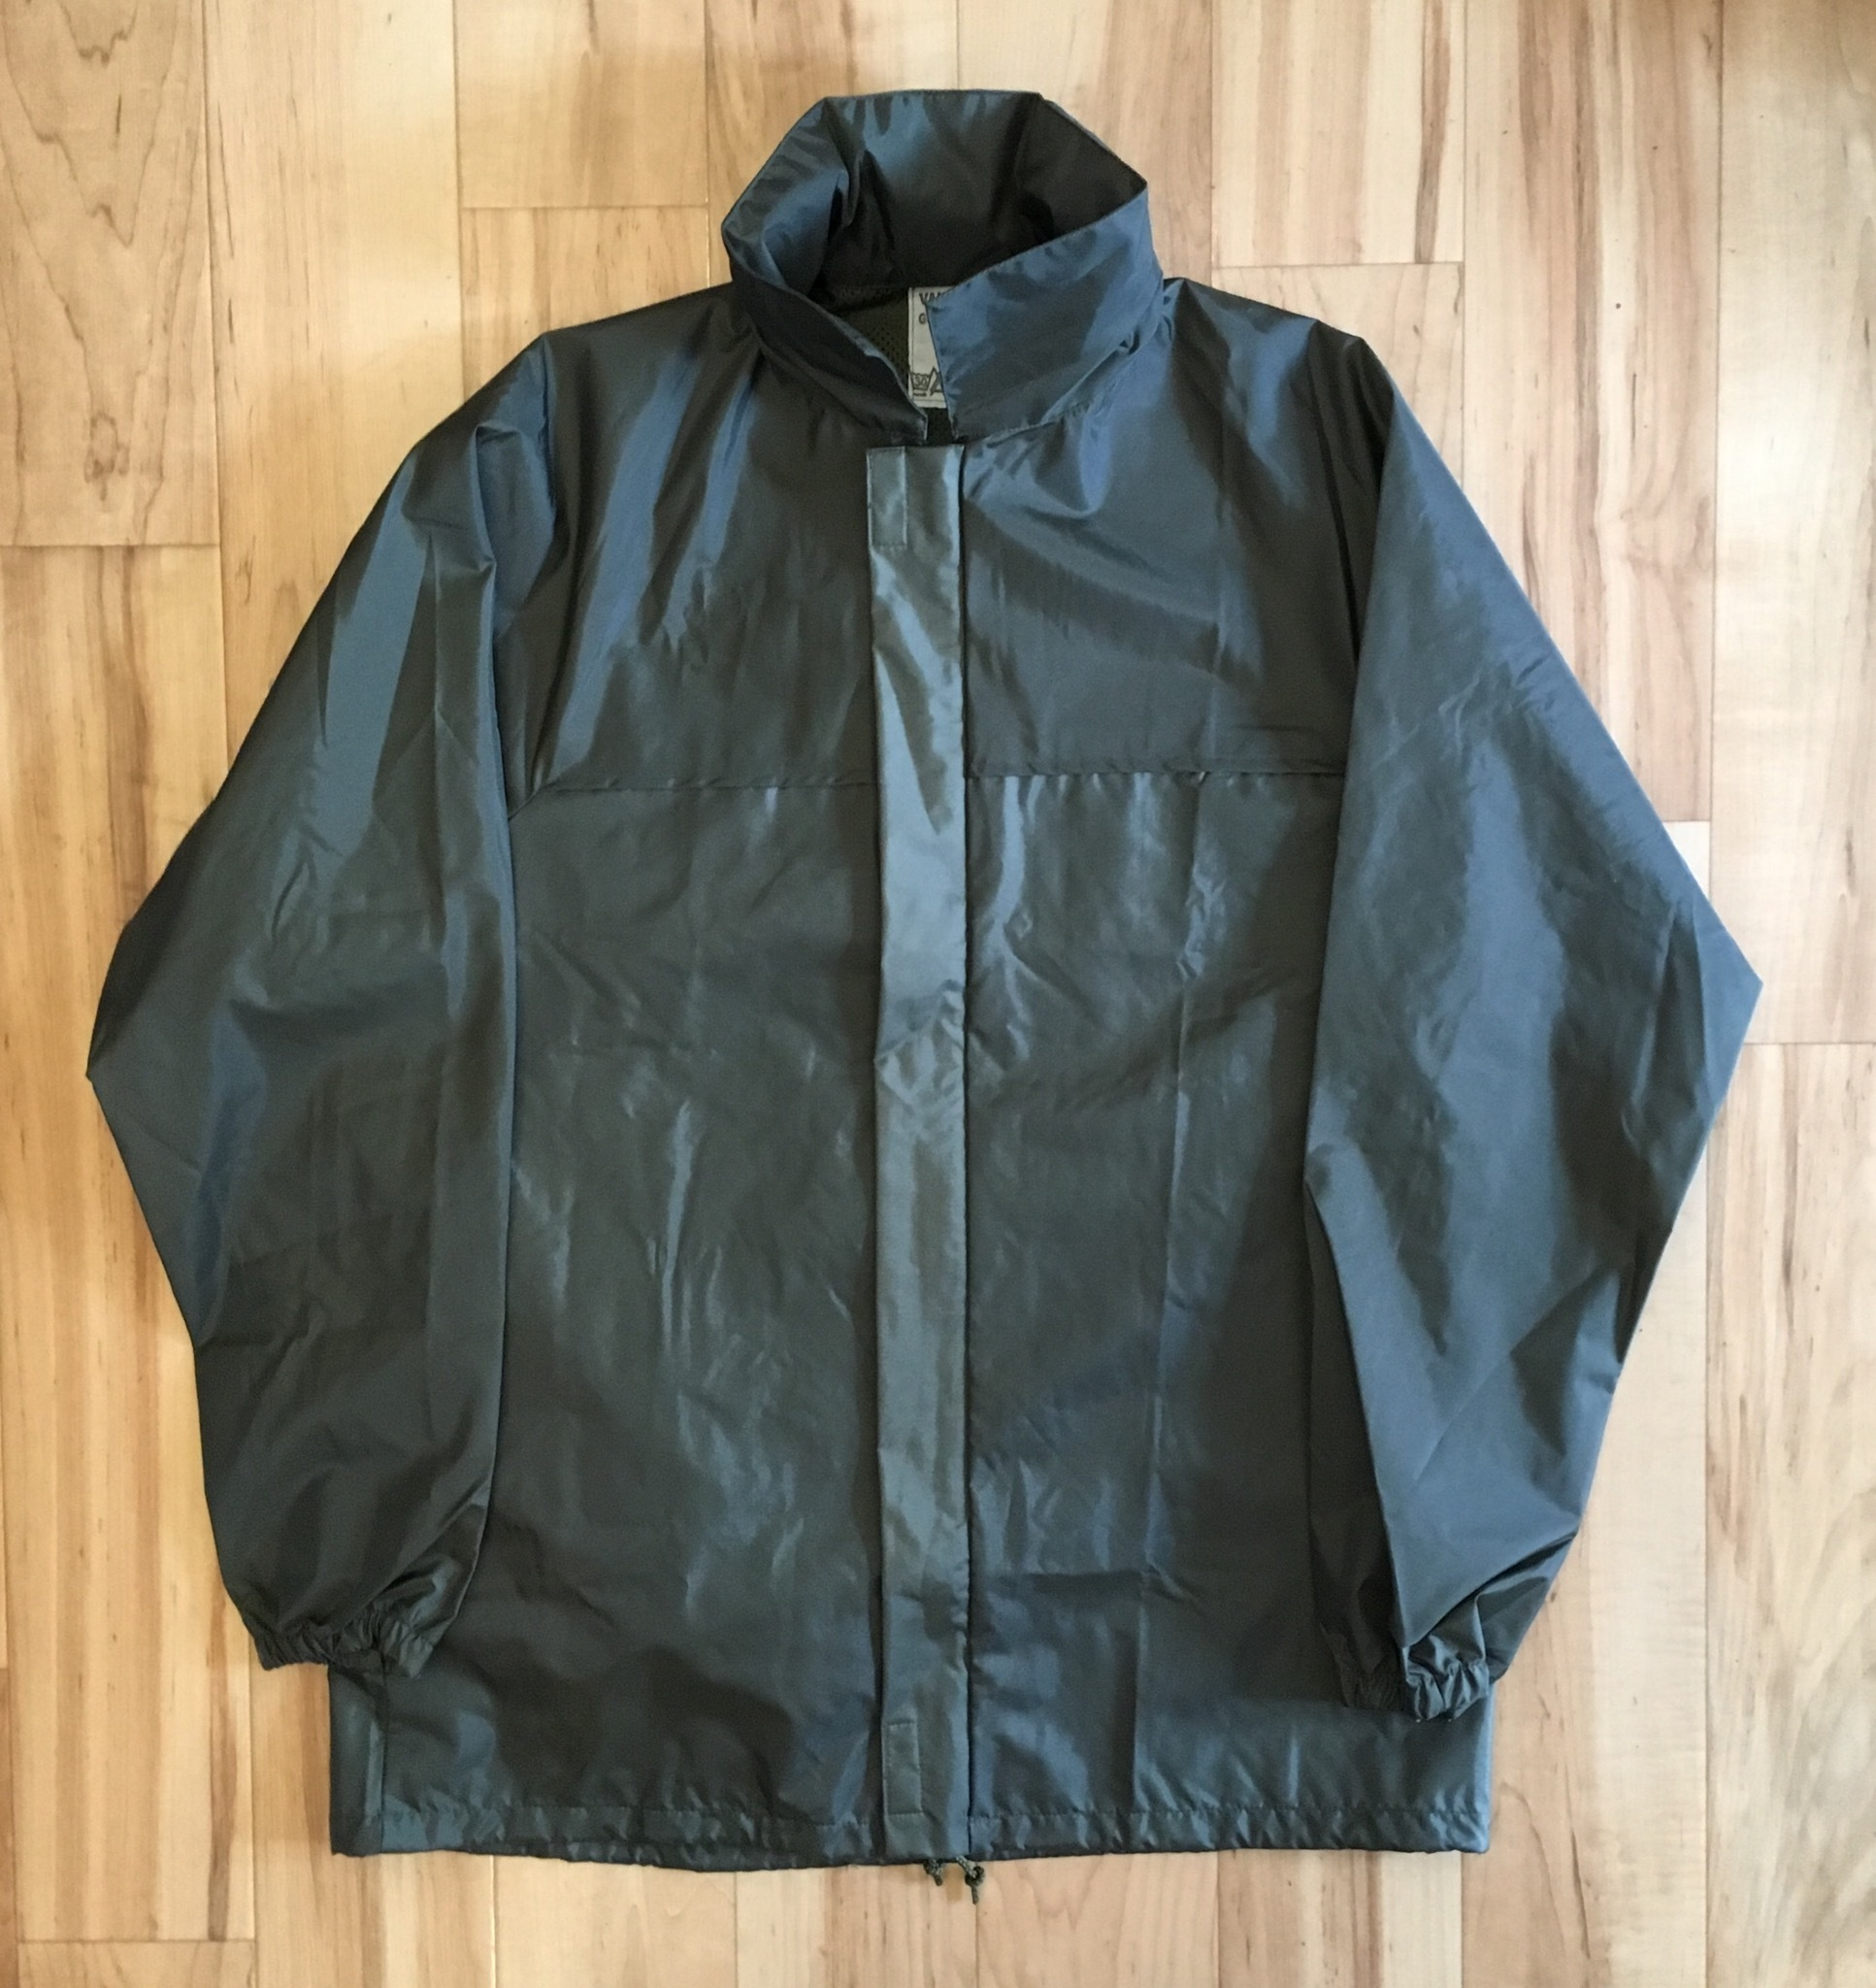 DEADSTOCK French Military Rain Jacket